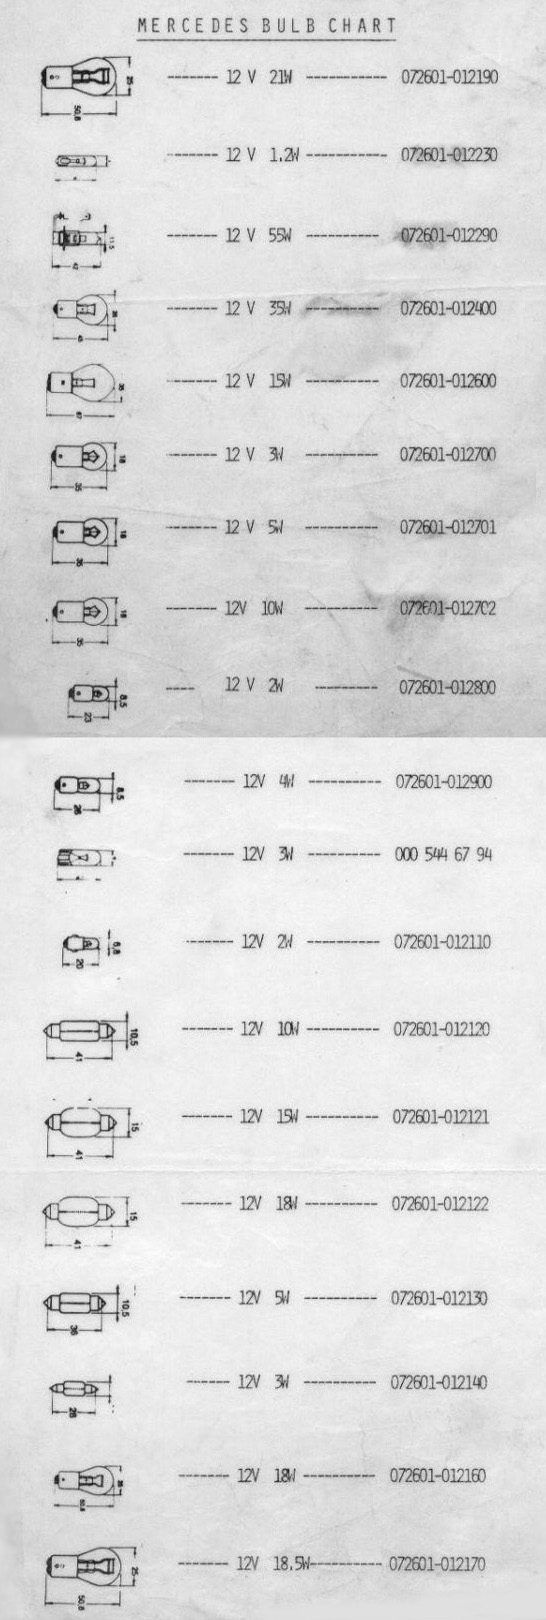 medium resolution of mercedes benz fog lamp bulb 072601 012600 is shown as 12v 15w fifth bulb down on the chart but the power rating should be 35w